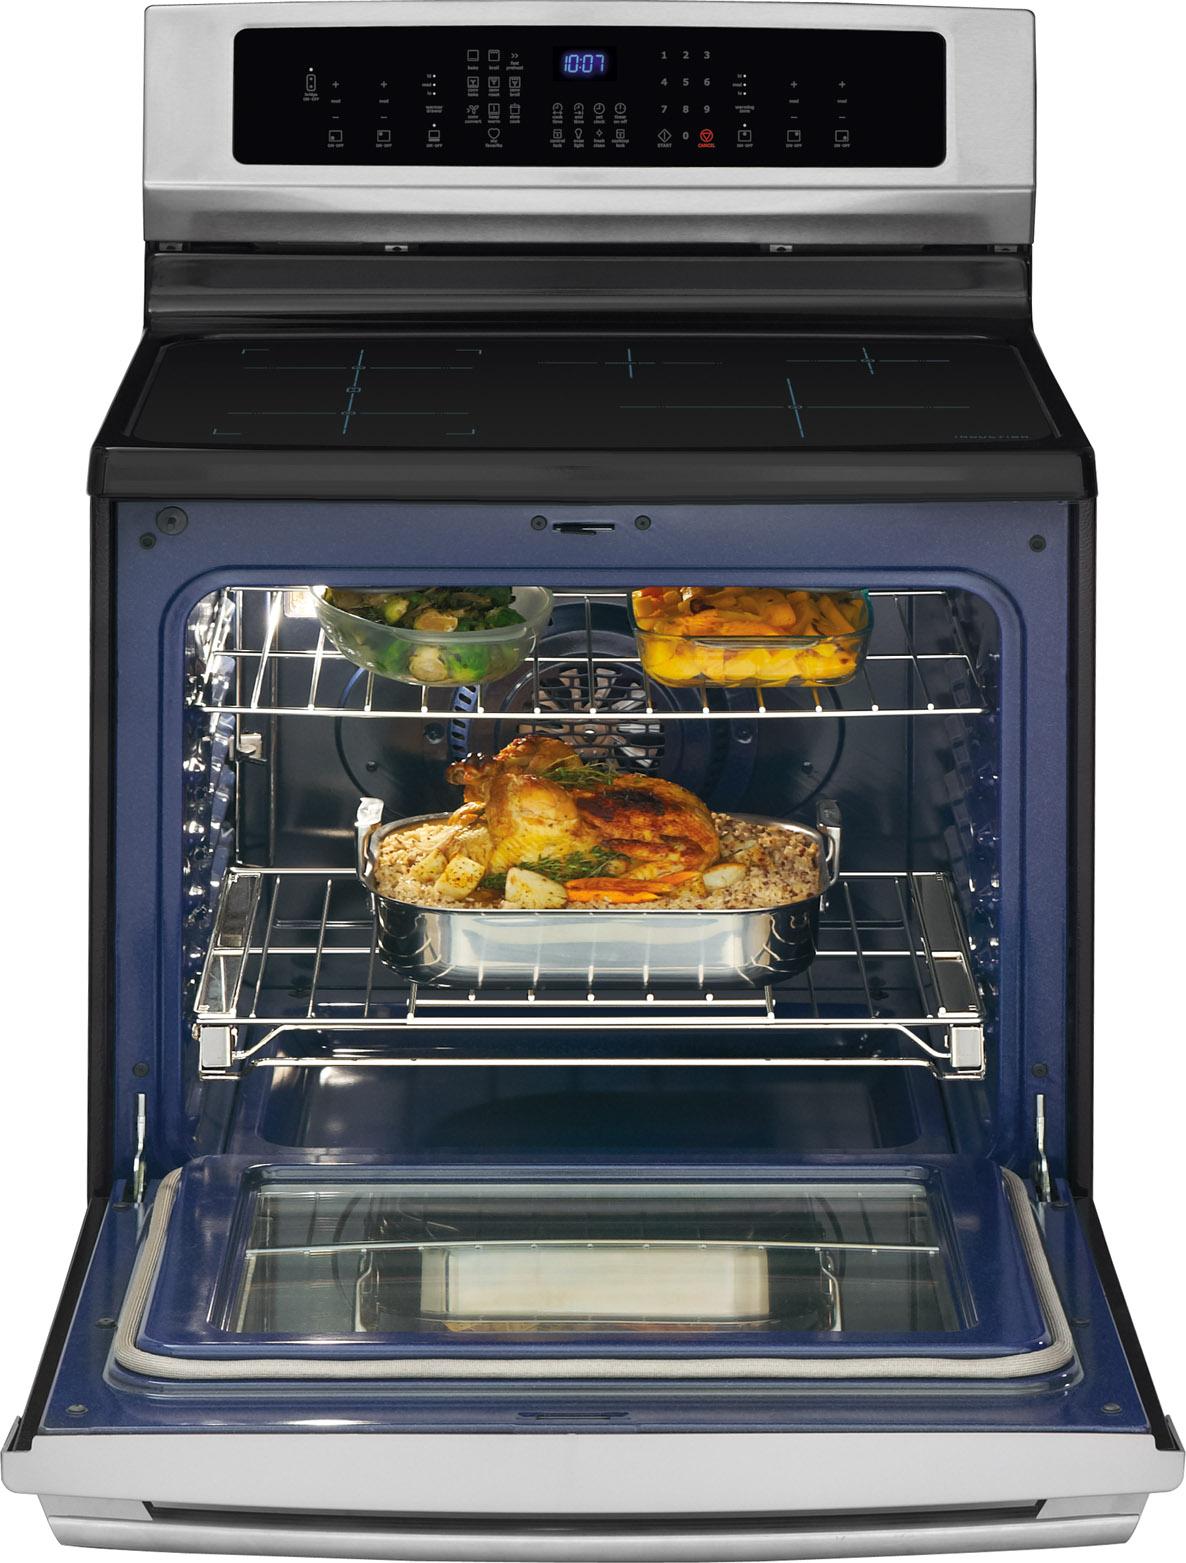 Electrolux Introduces New Induction Free Standing Range